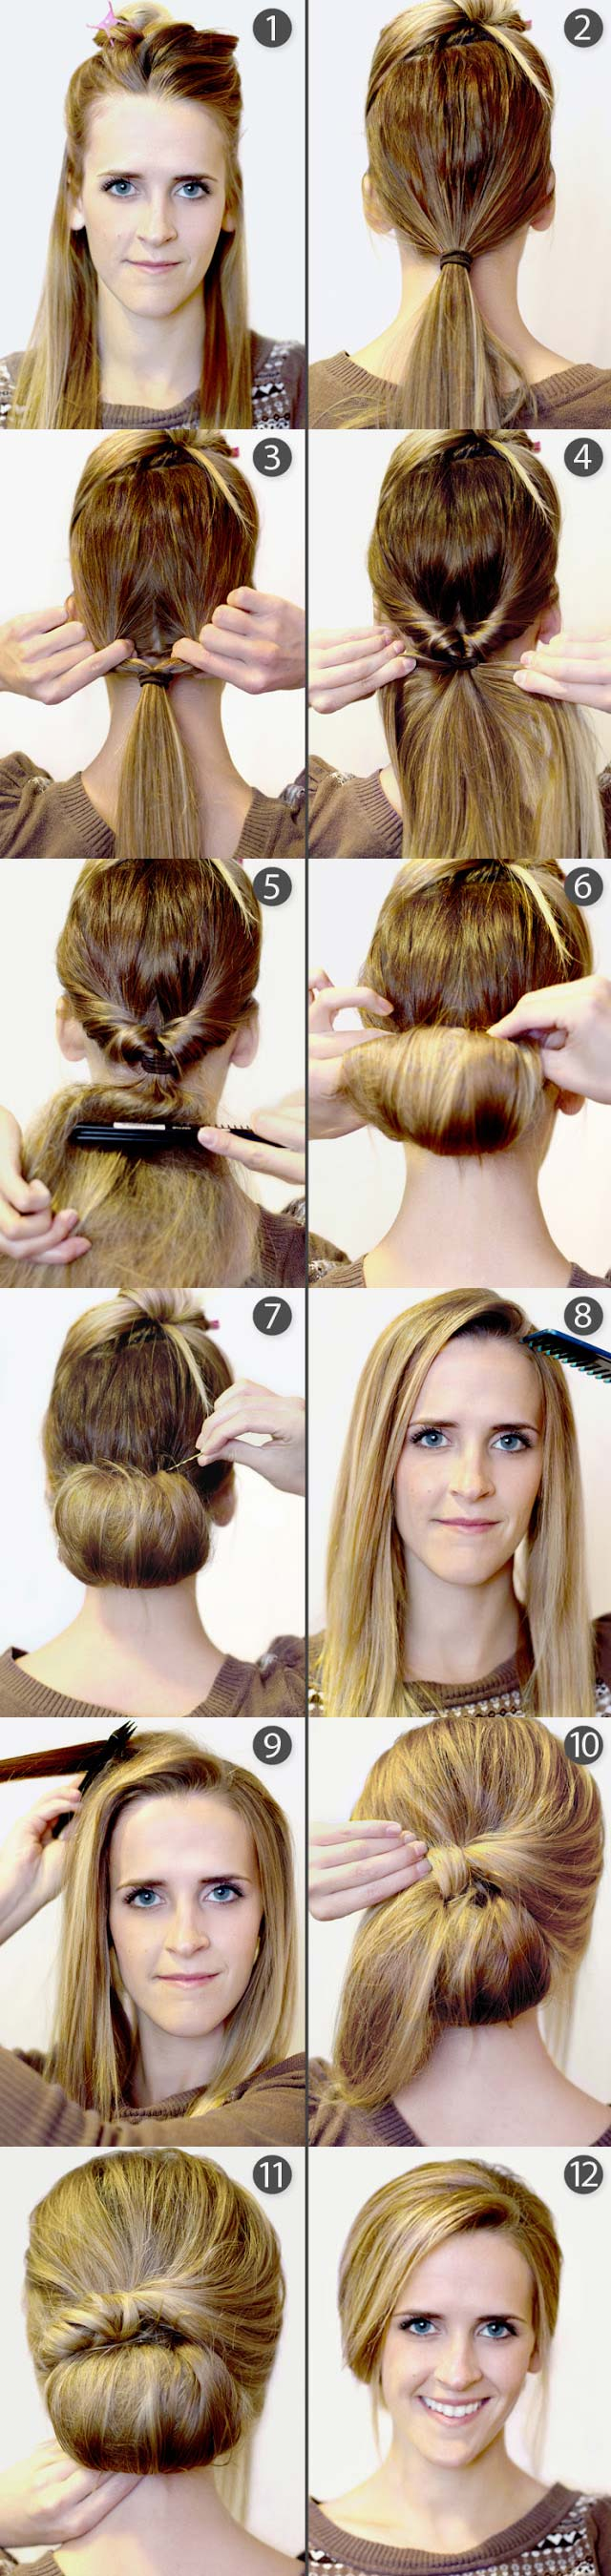 Easy Hairstyles You Can Braids To Do On Yourself